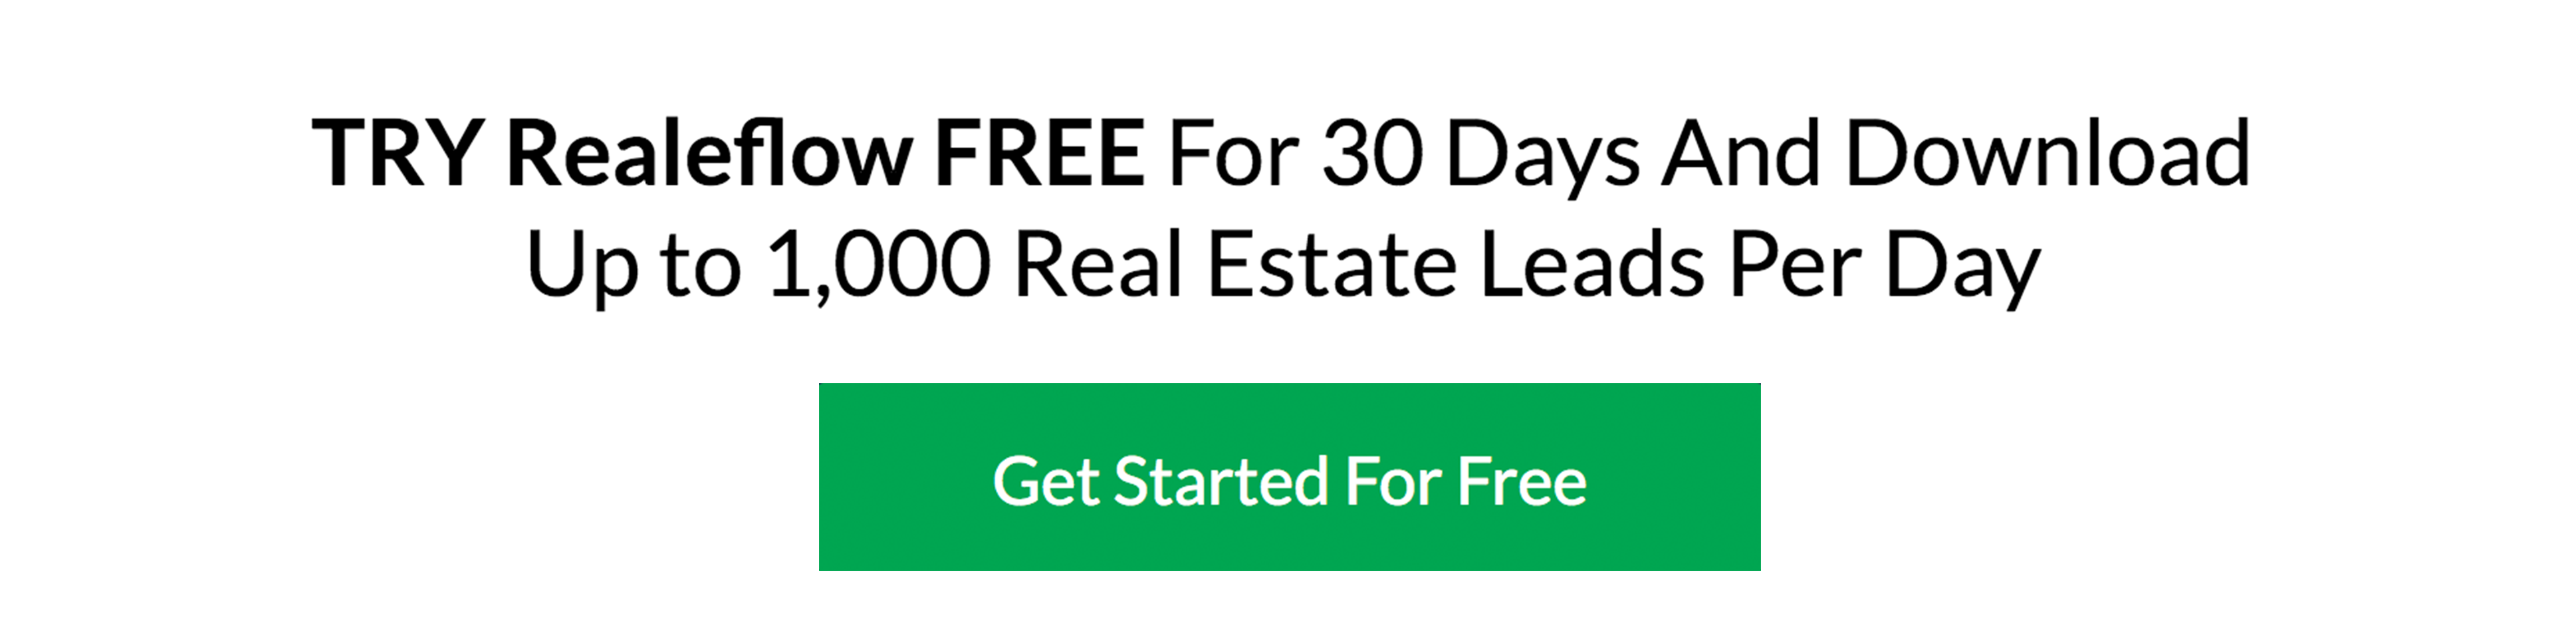 Get A 30-Day Free Trial Of Realeflow